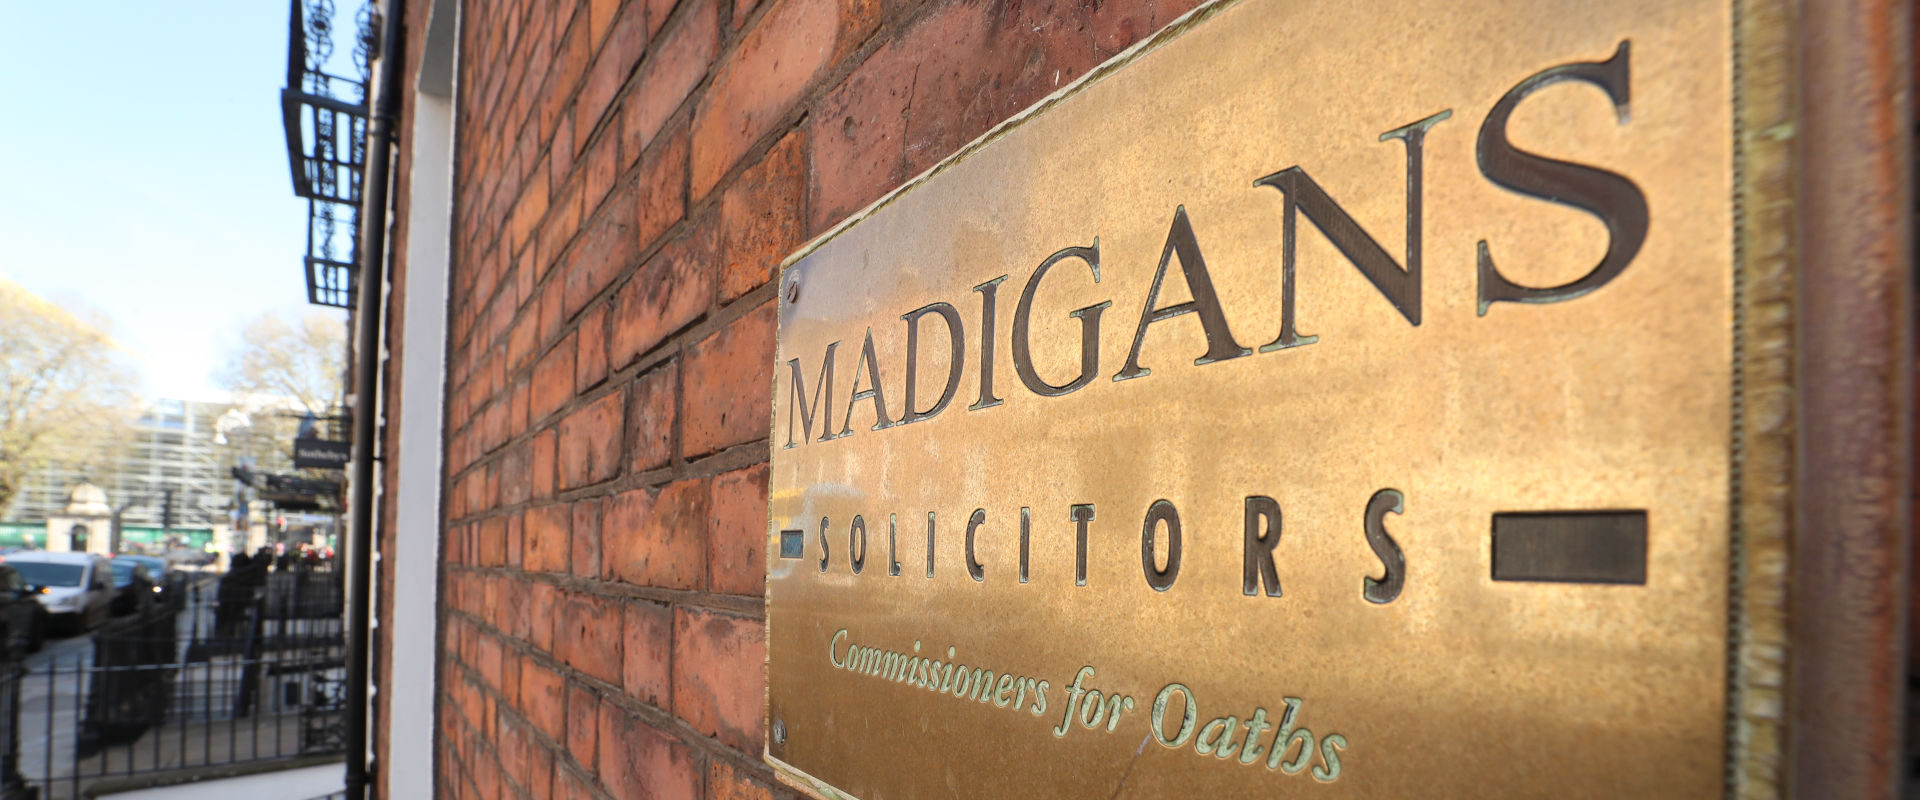 Madigans Solicitors located in Dublin Ireland